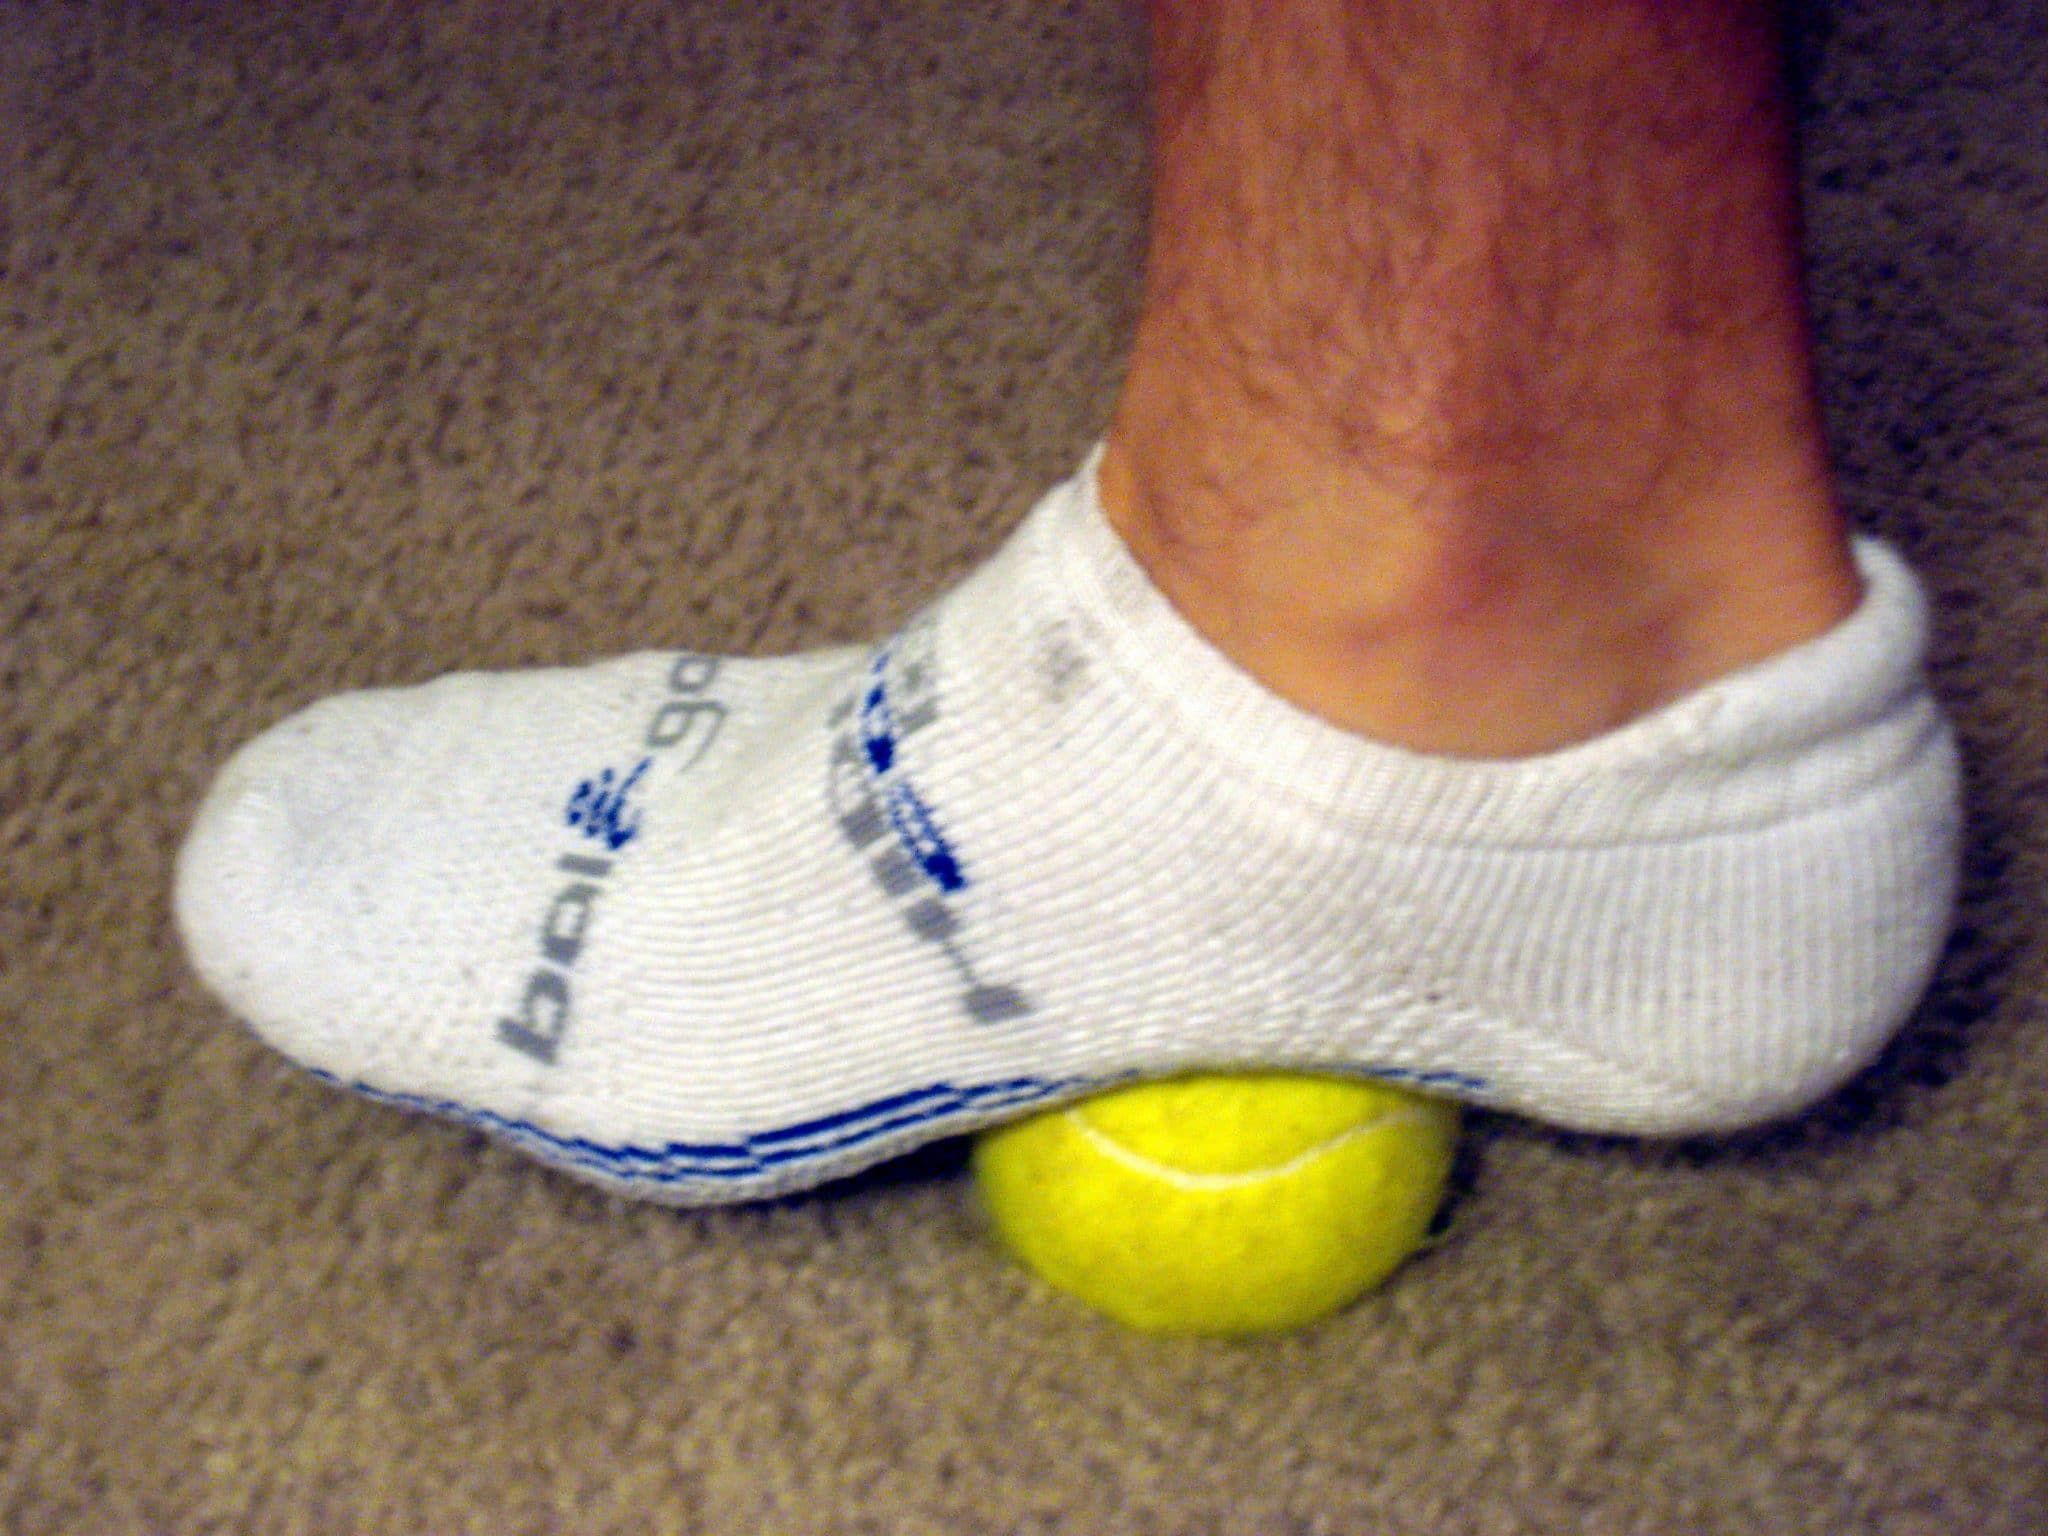 Tennis ball of roll out arch of foot